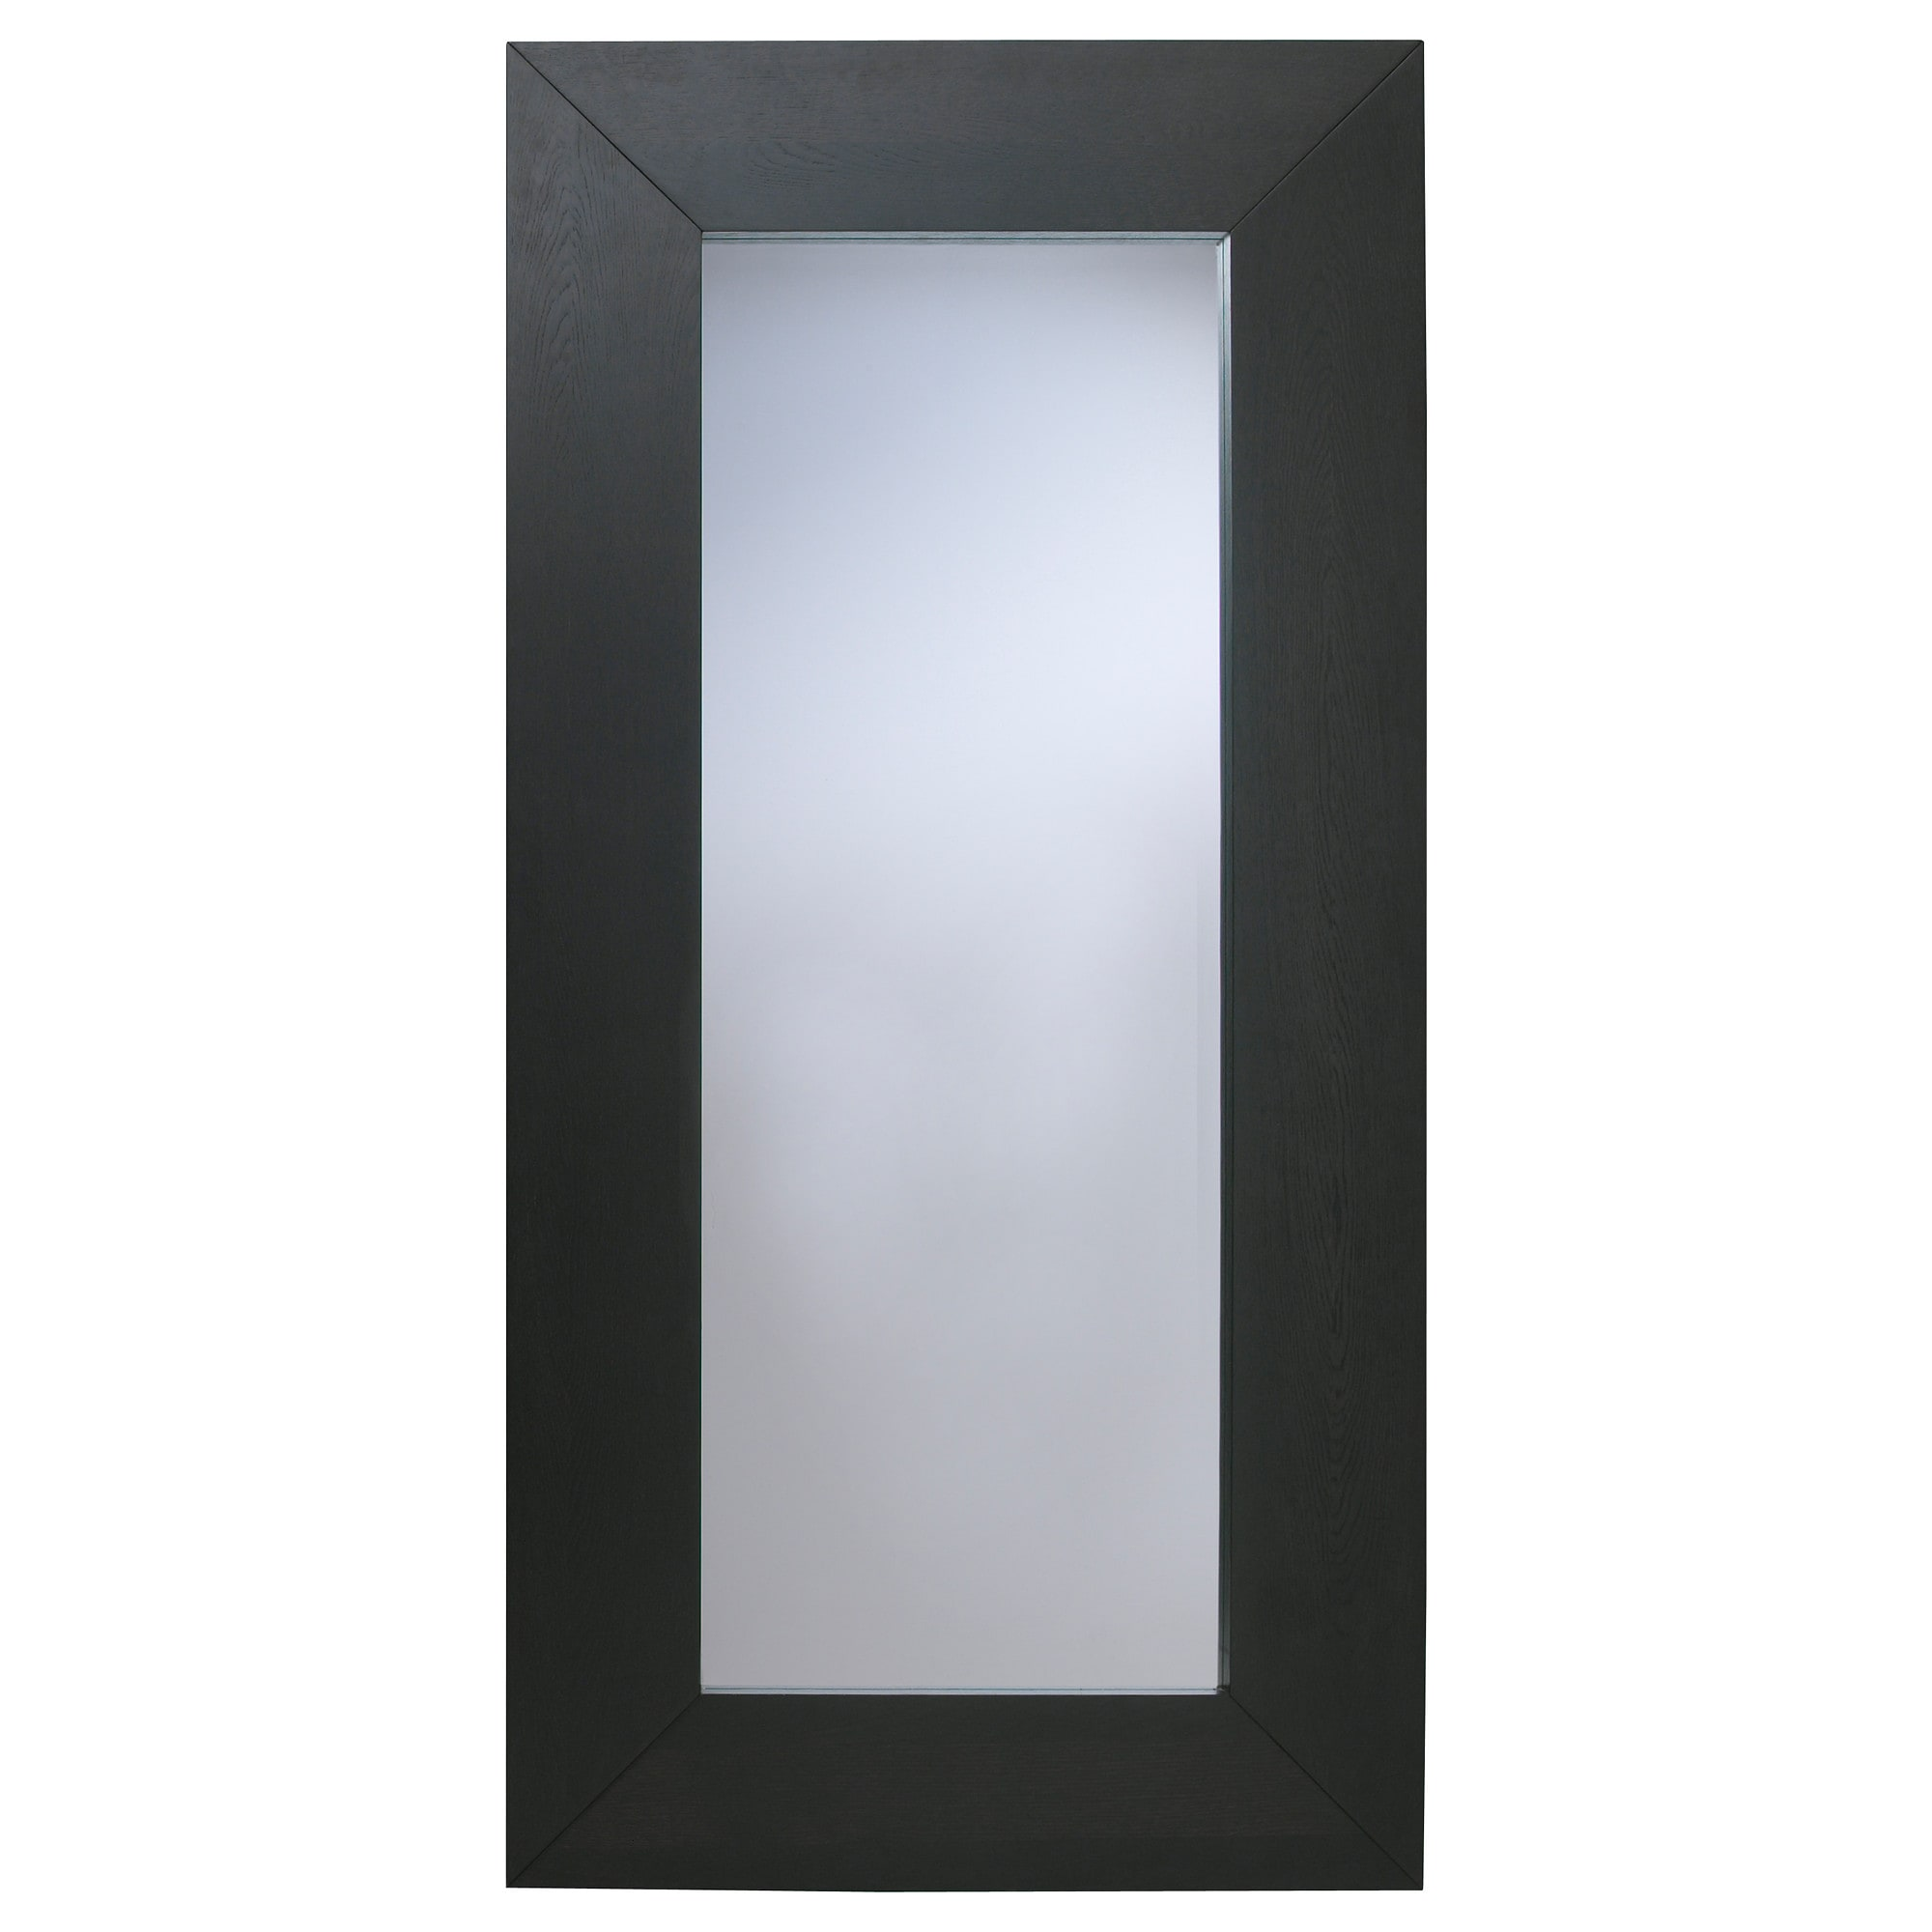 Wall mirrors ikea mongstad mirror black brown width 37 height 74 34 amipublicfo Gallery